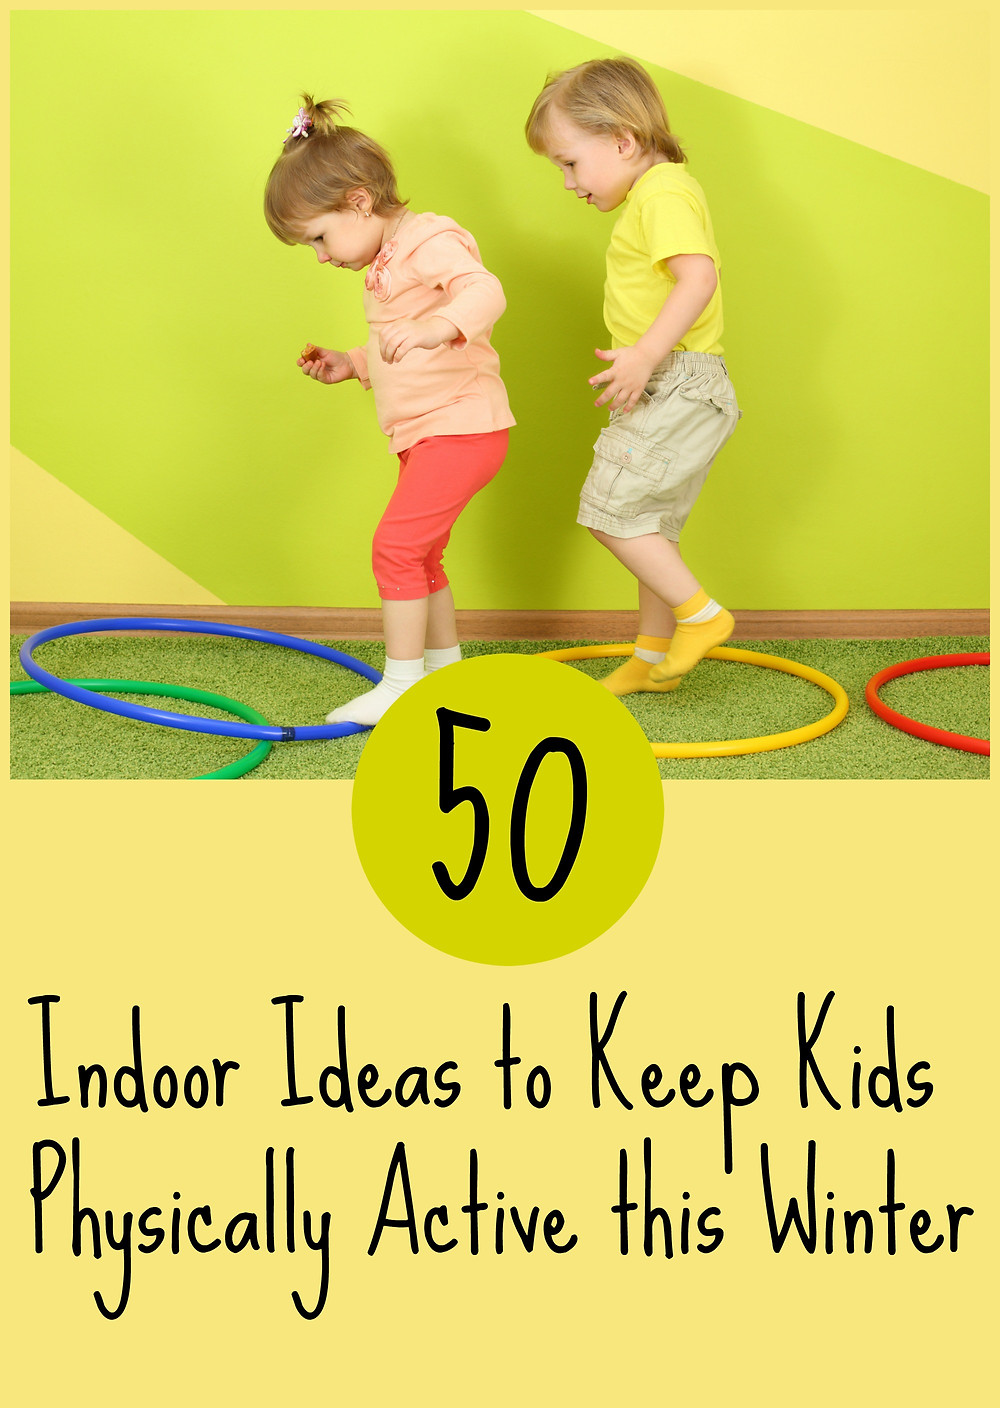 50 Indoor Ideas to Keep Kids Physically Active this Winter